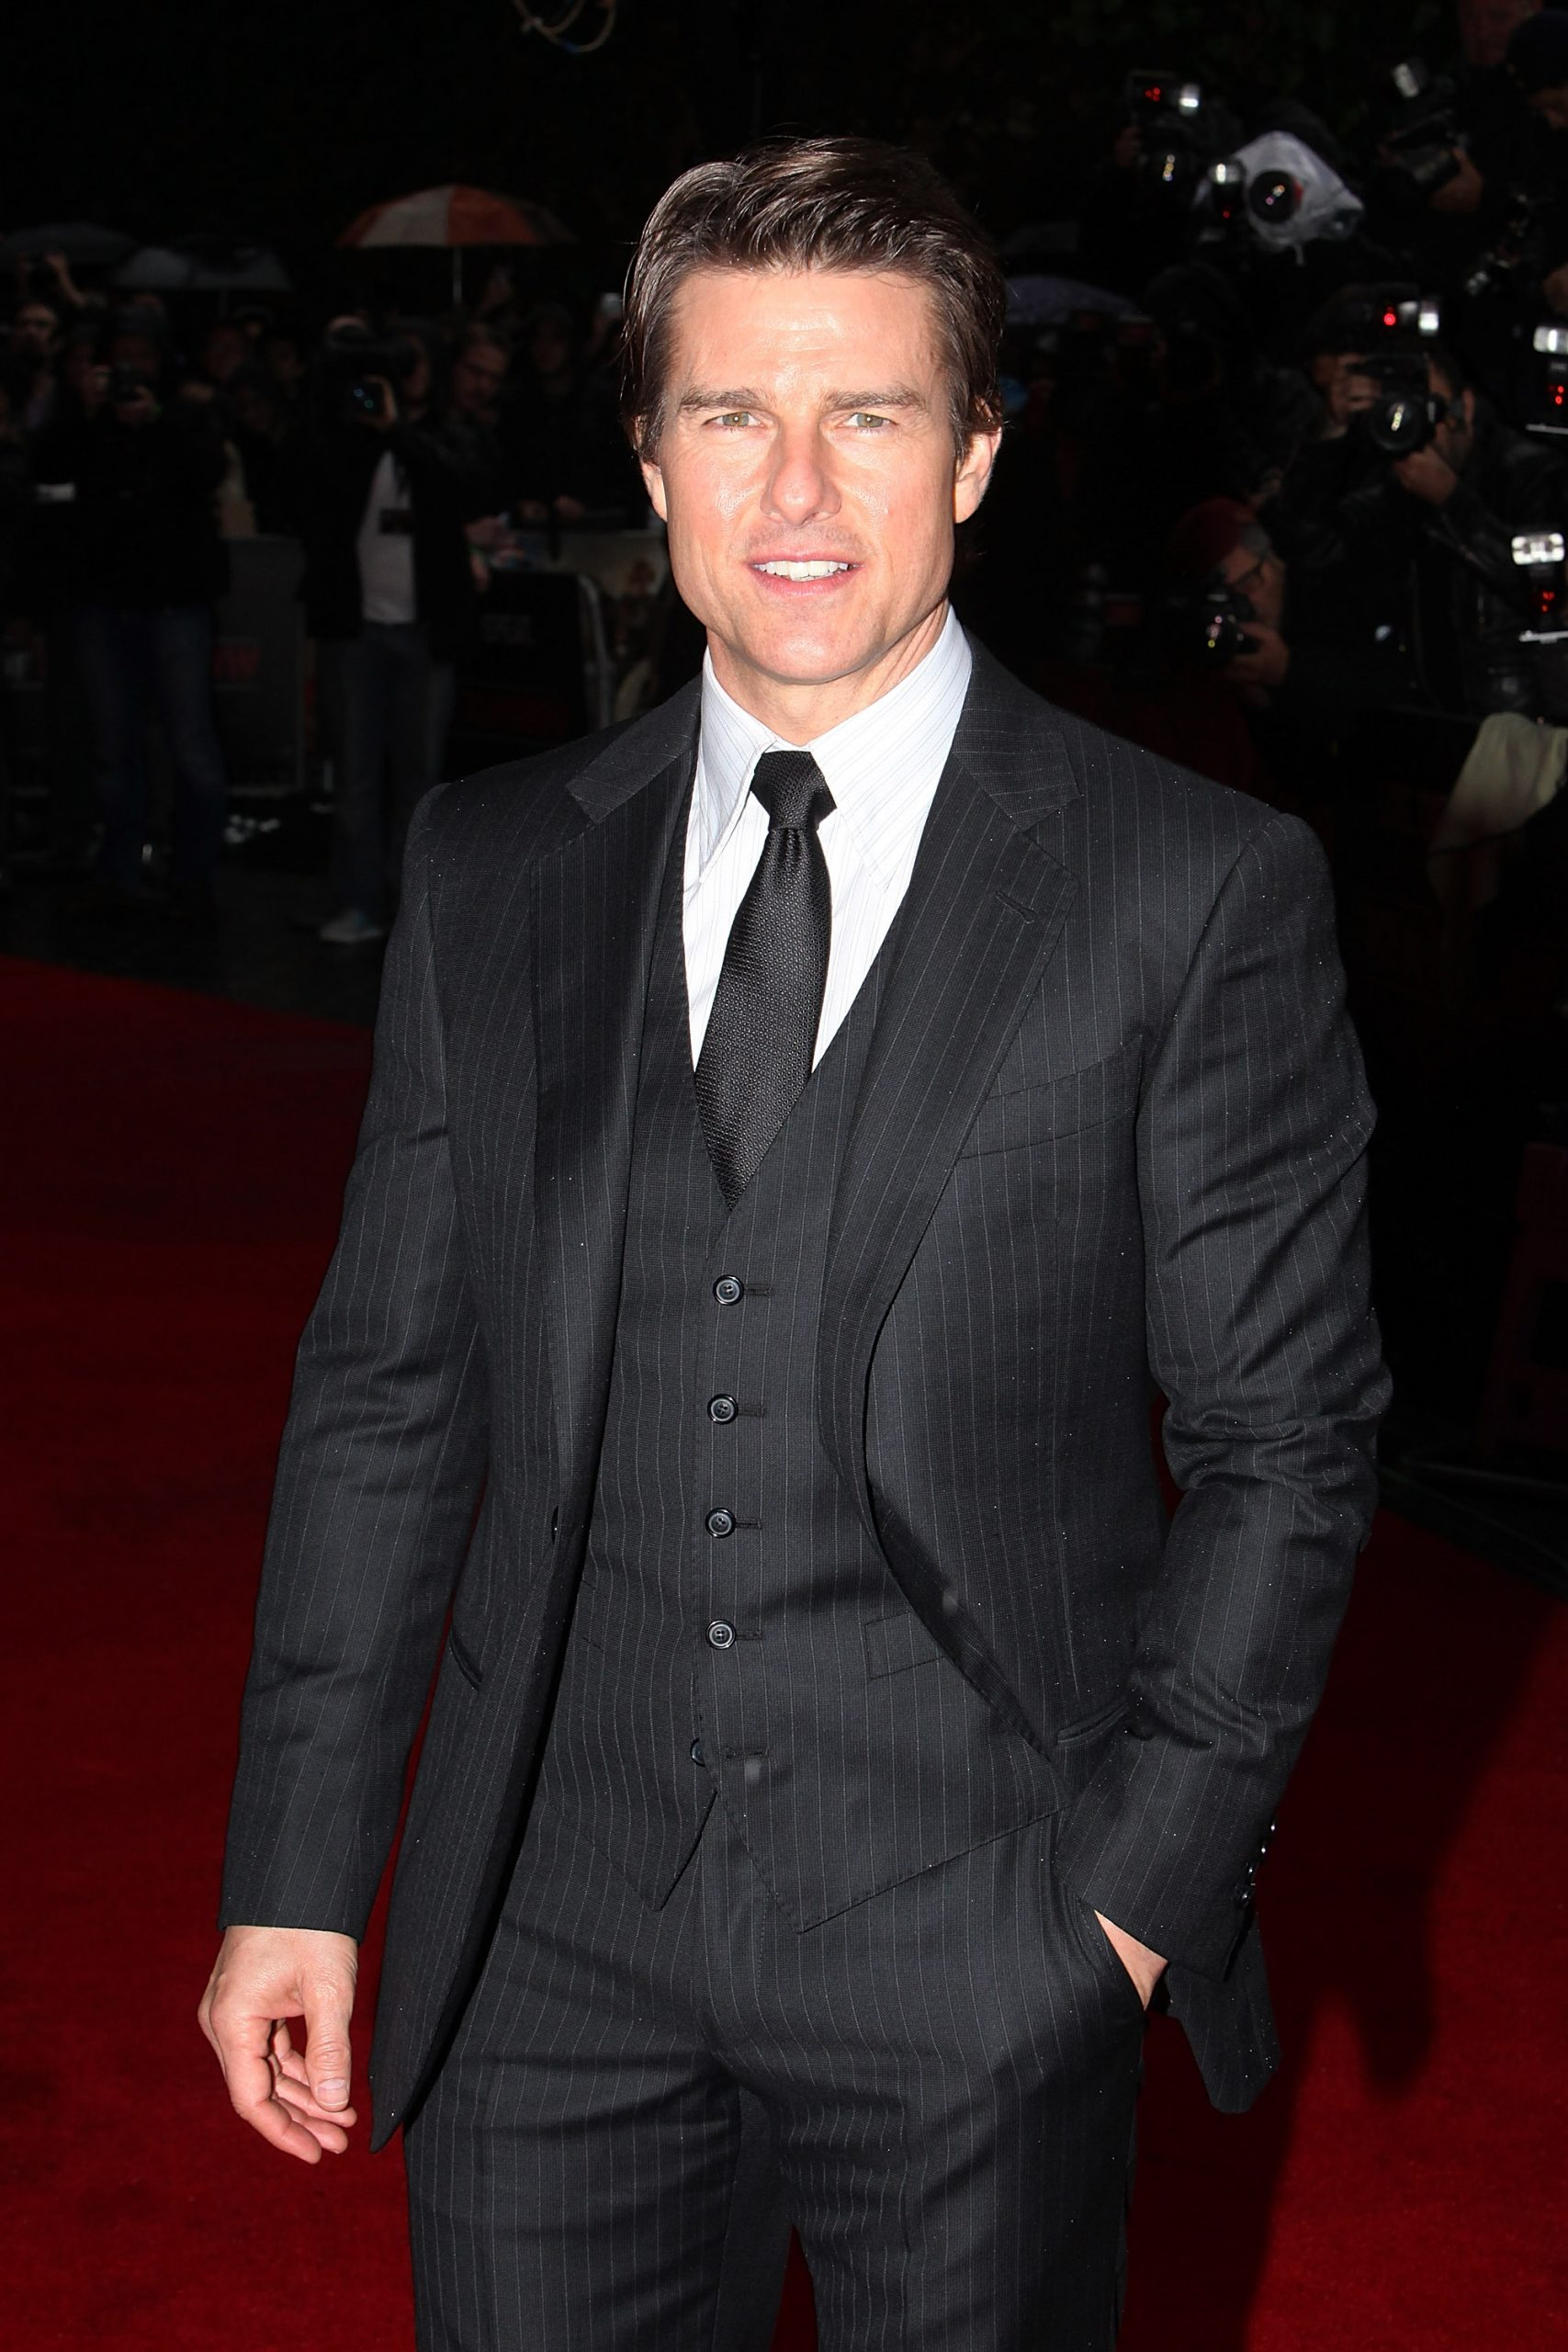 Tom Cruise - Nightingale's Excrement Facial